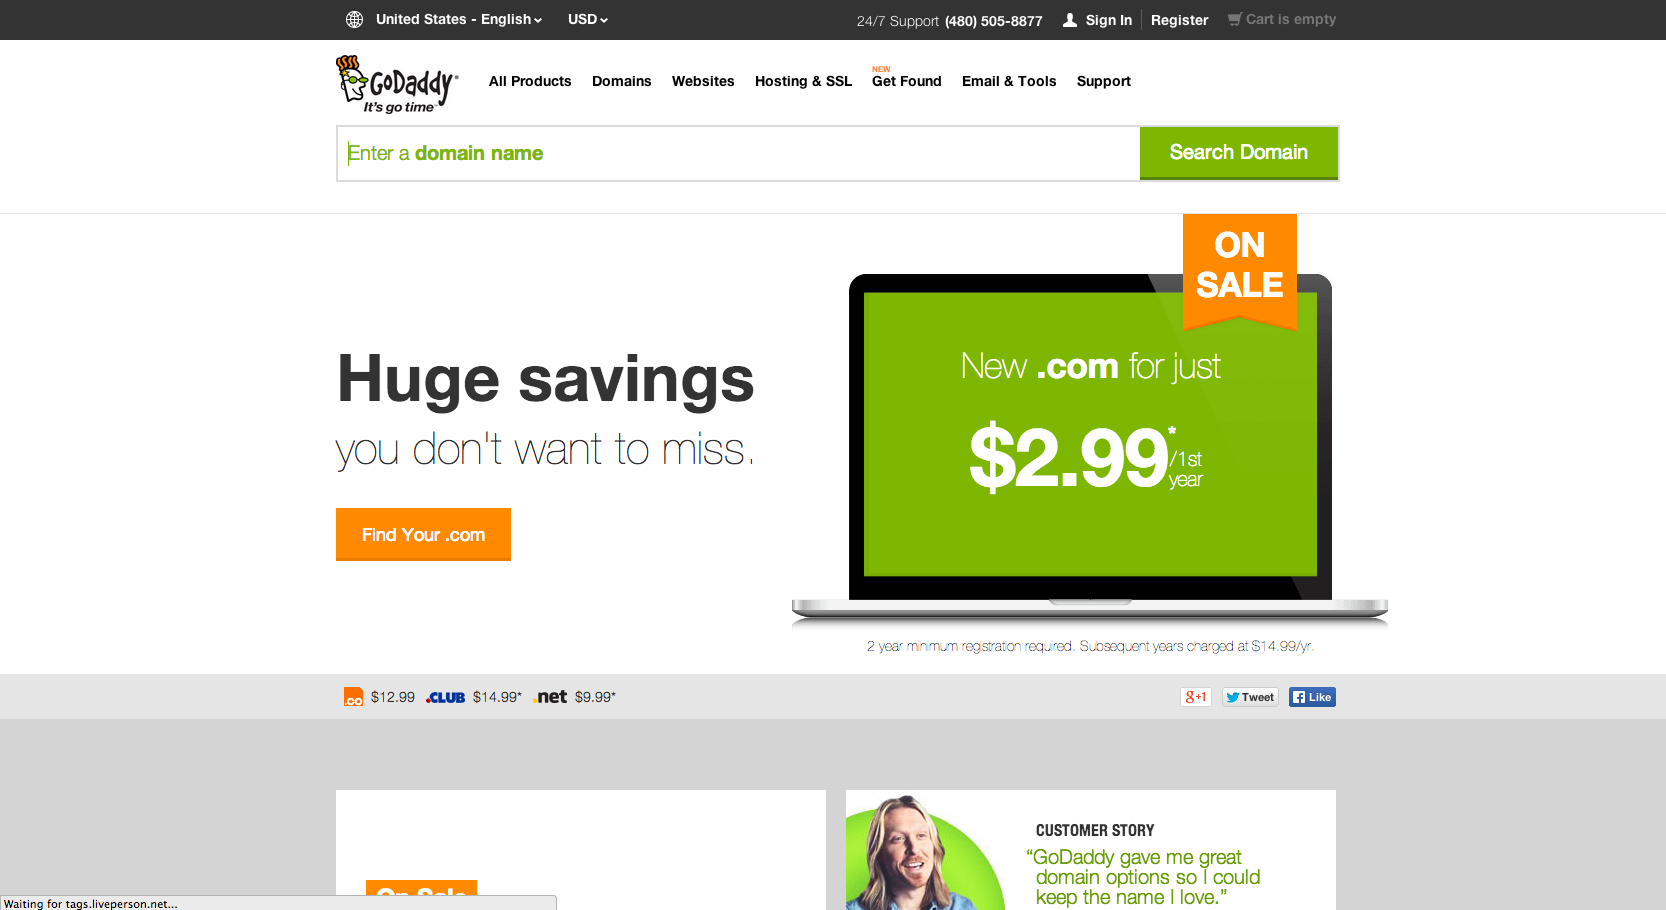 godaddy for counseling website